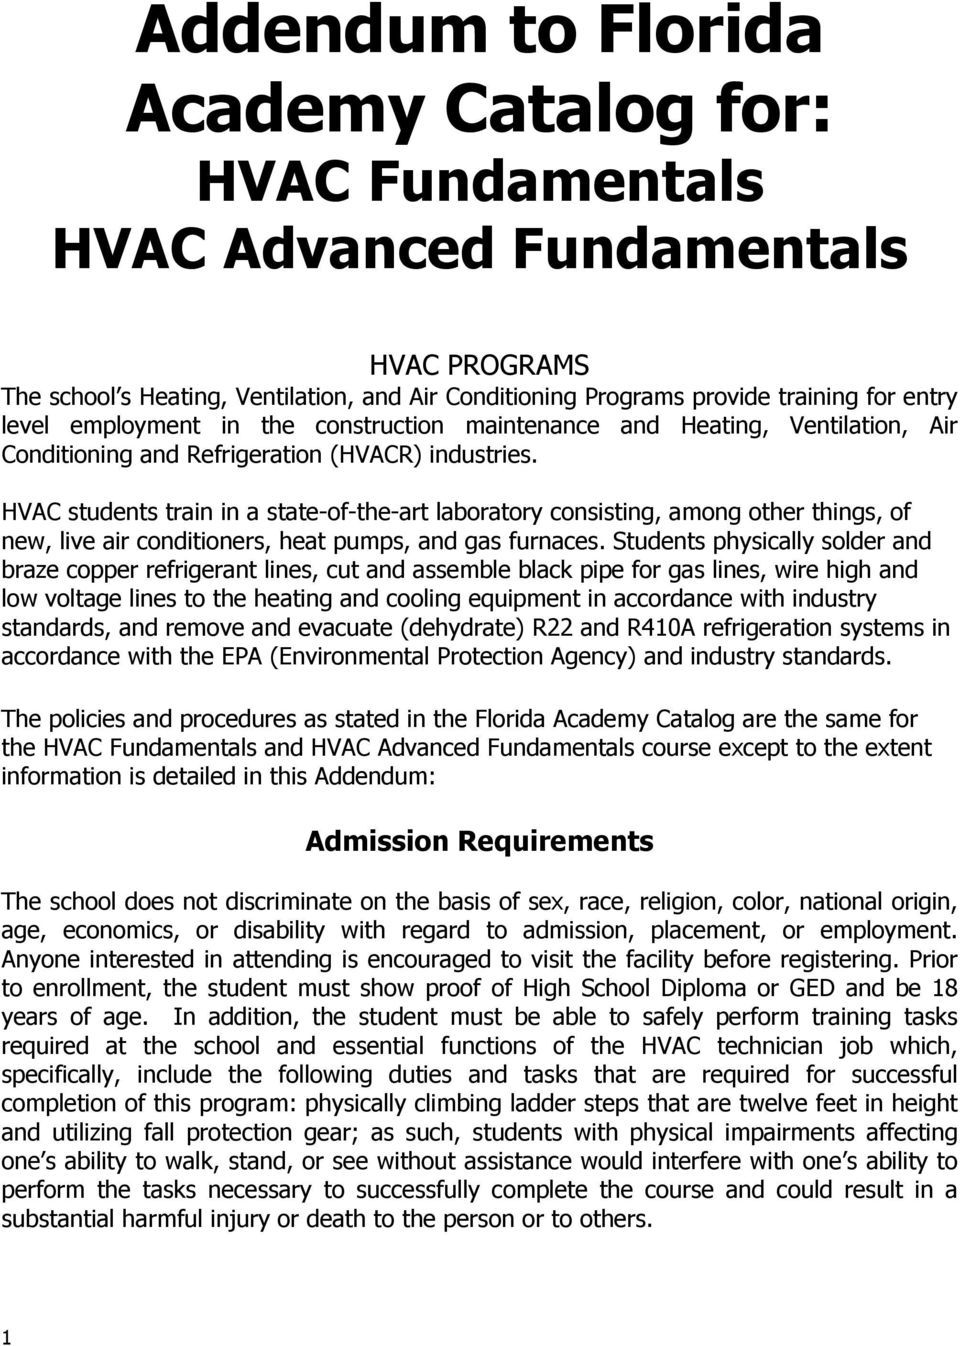 HVAC students train in a state-of-the-art laboratory consisting, among other things, of new, live air conditioners, heat pumps, and gas furnaces.